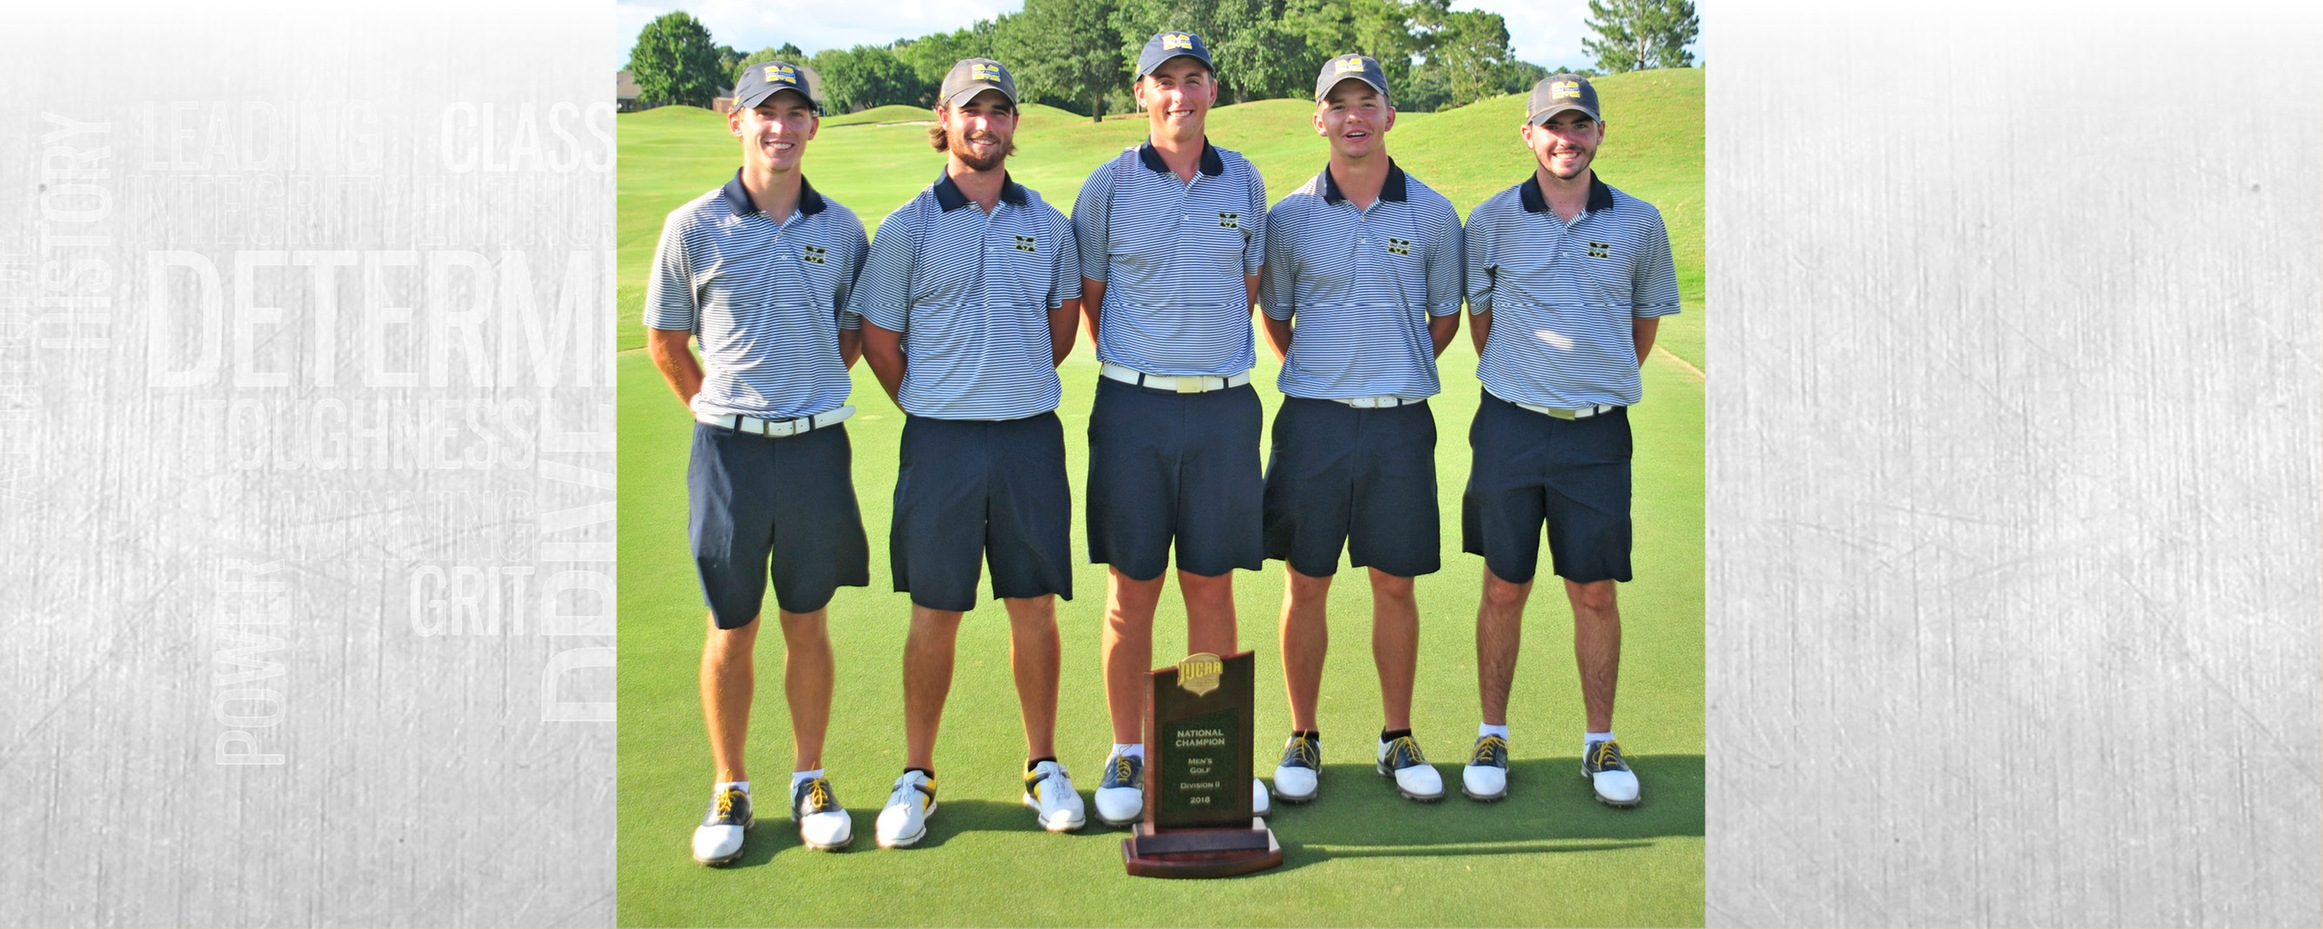 MGCCC WINS NATIONAL CHAMPIONSHIP